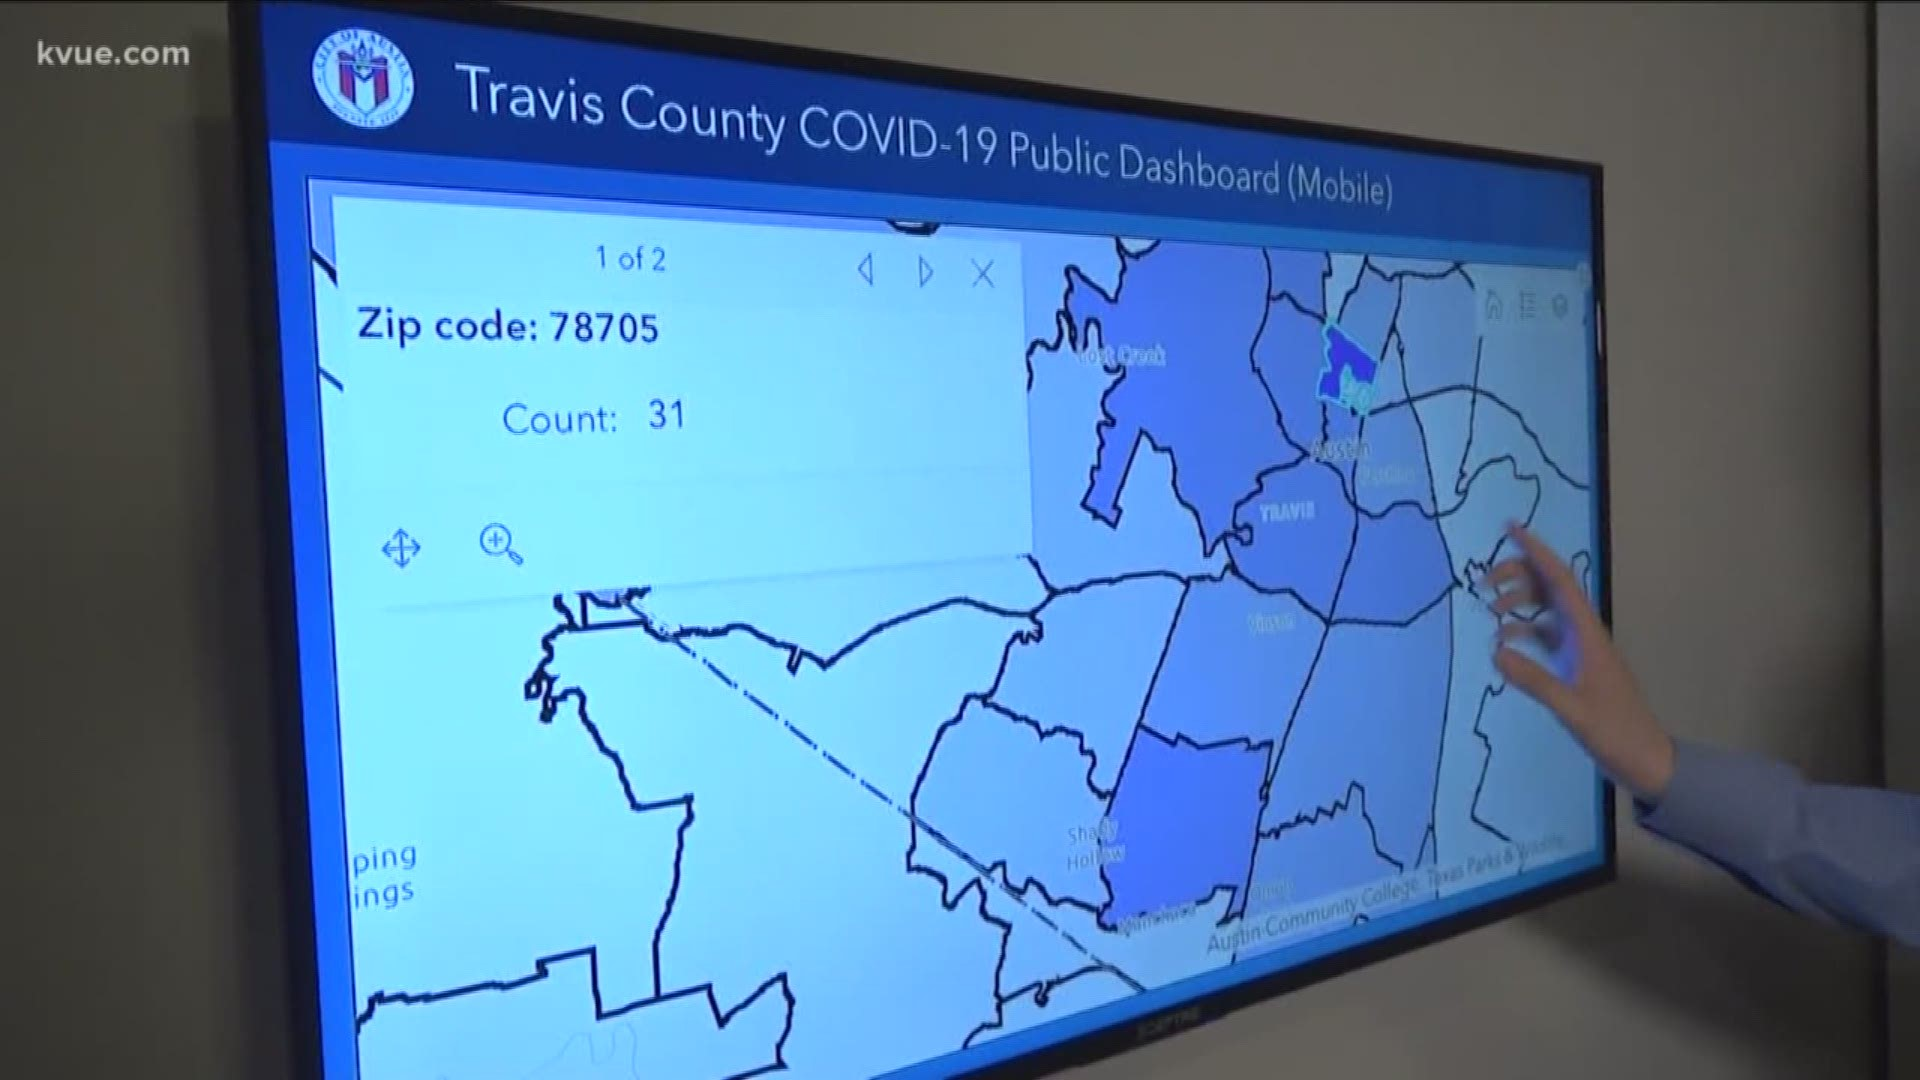 Coronavirus How To Find How Many Cases Are Near You Kvue Com